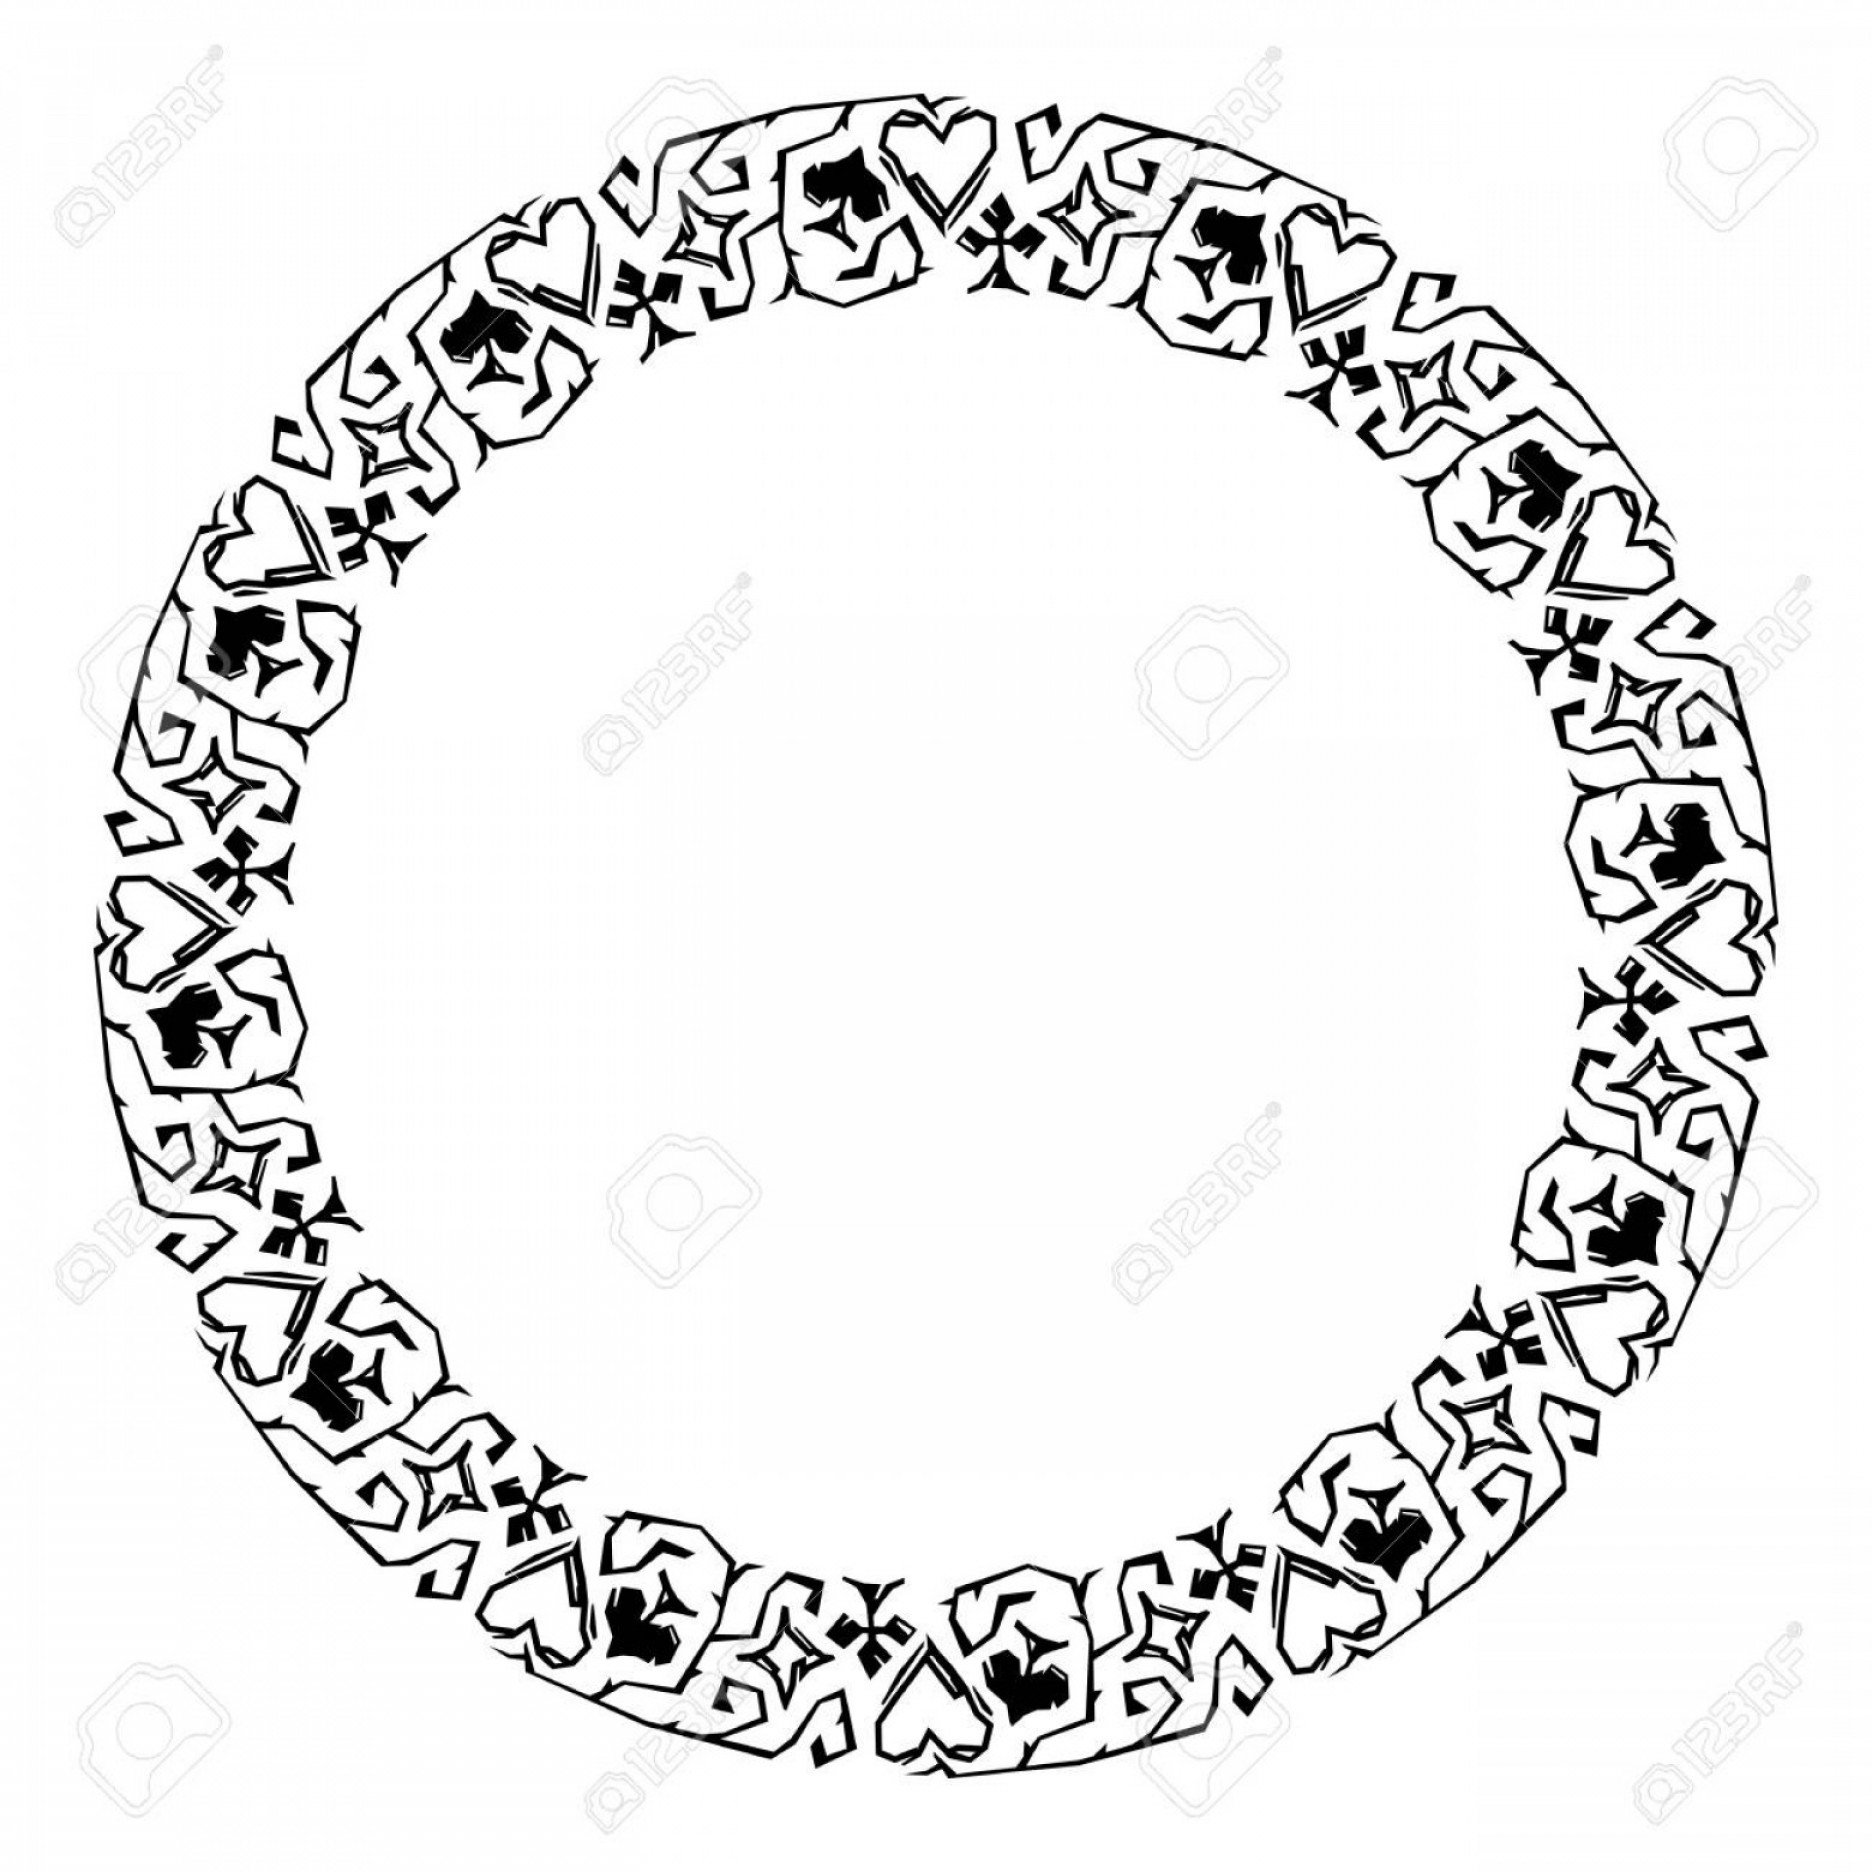 Photostock Vector Round Decorative Frame With Card Suits